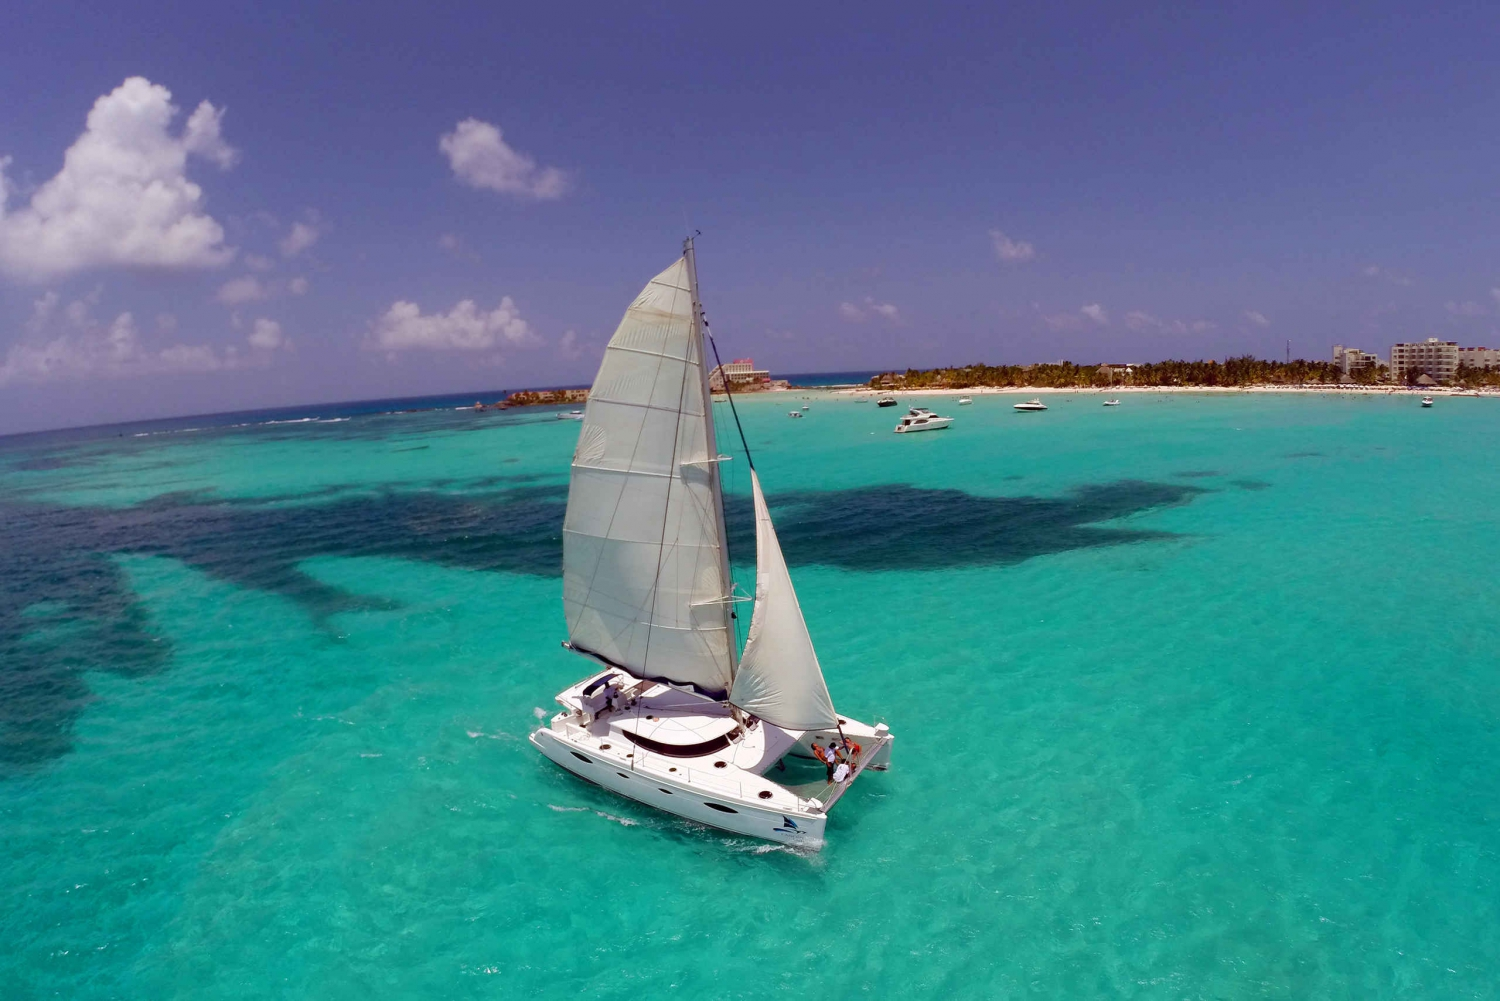 Full-Day Sailing Trip to Isla Mujeres with Transfer Options